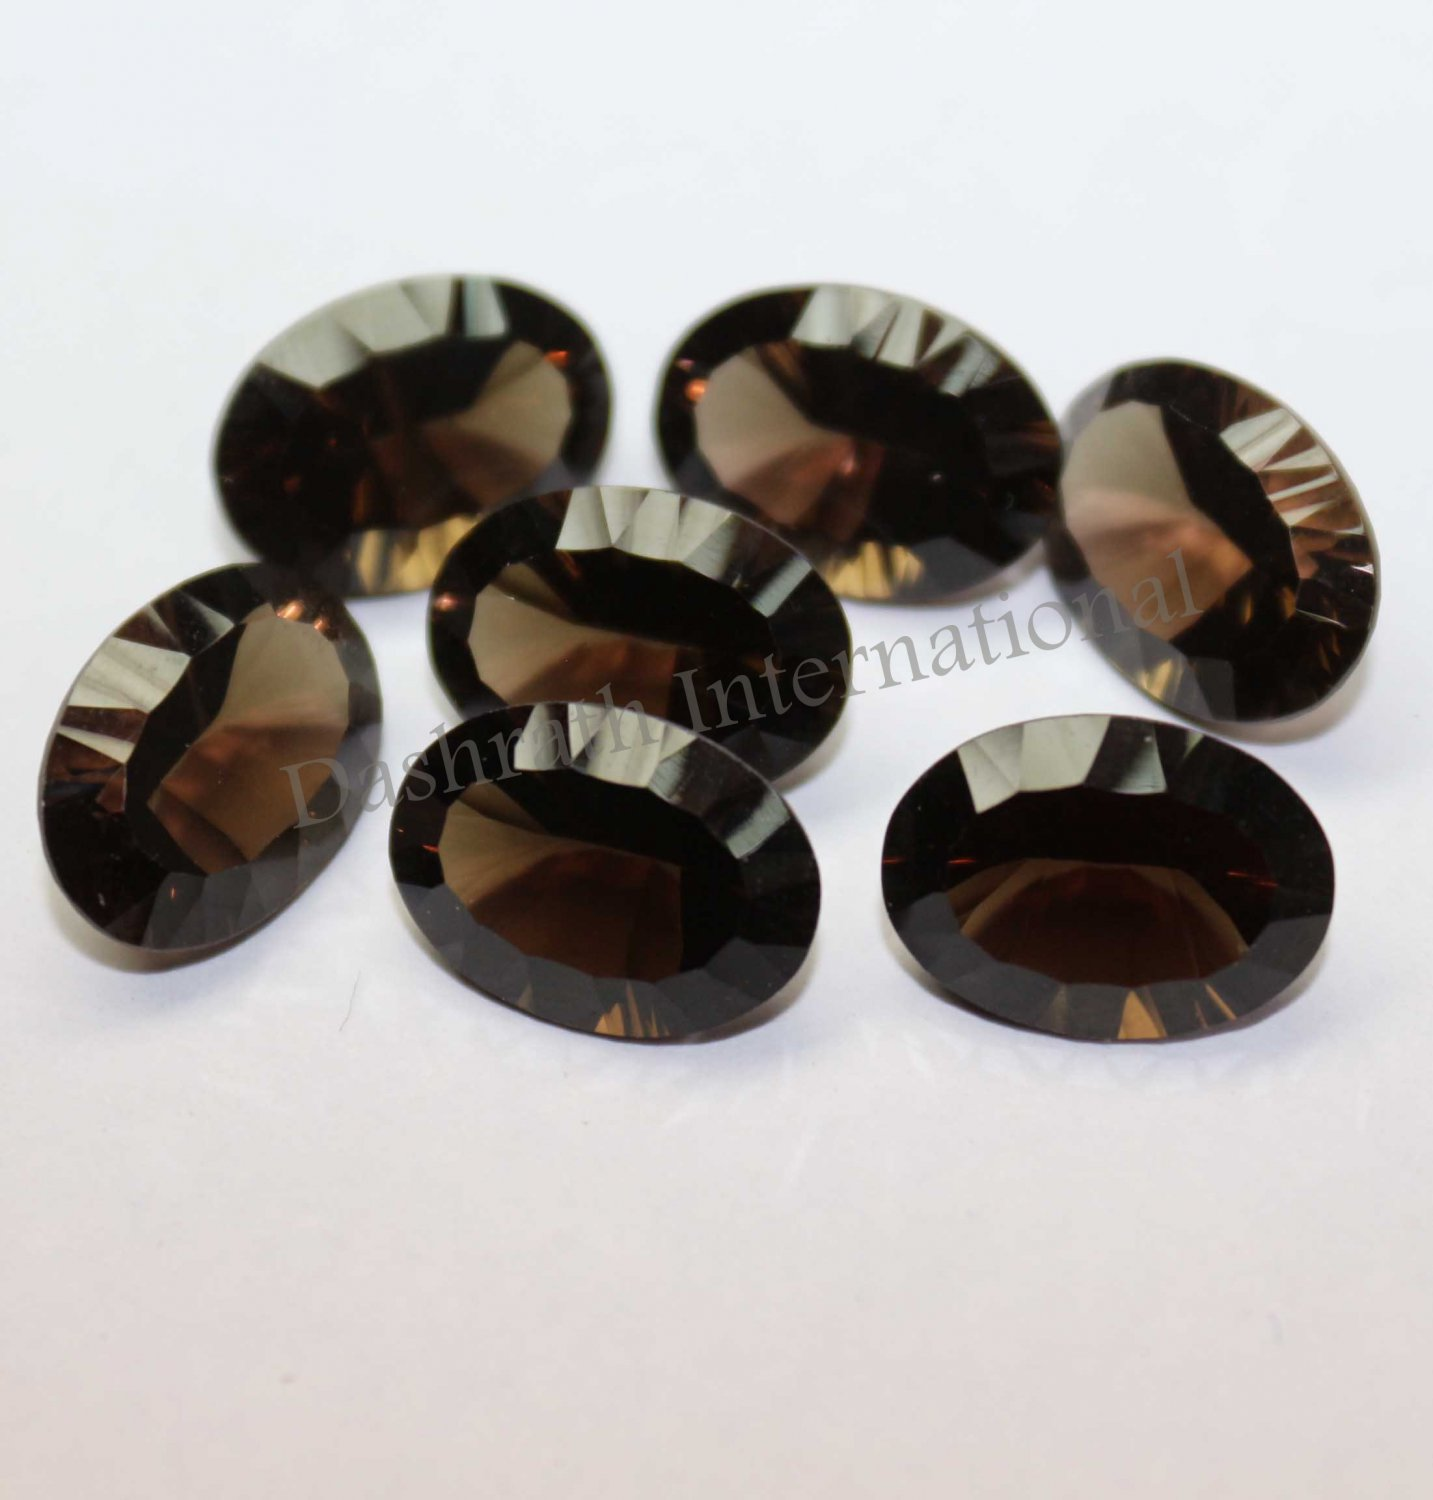 10x14mm Natural Smoky Quartz Concave Cut  Oval  75 Pieces Lot   (SI) Top Quality  Loose Gemstone